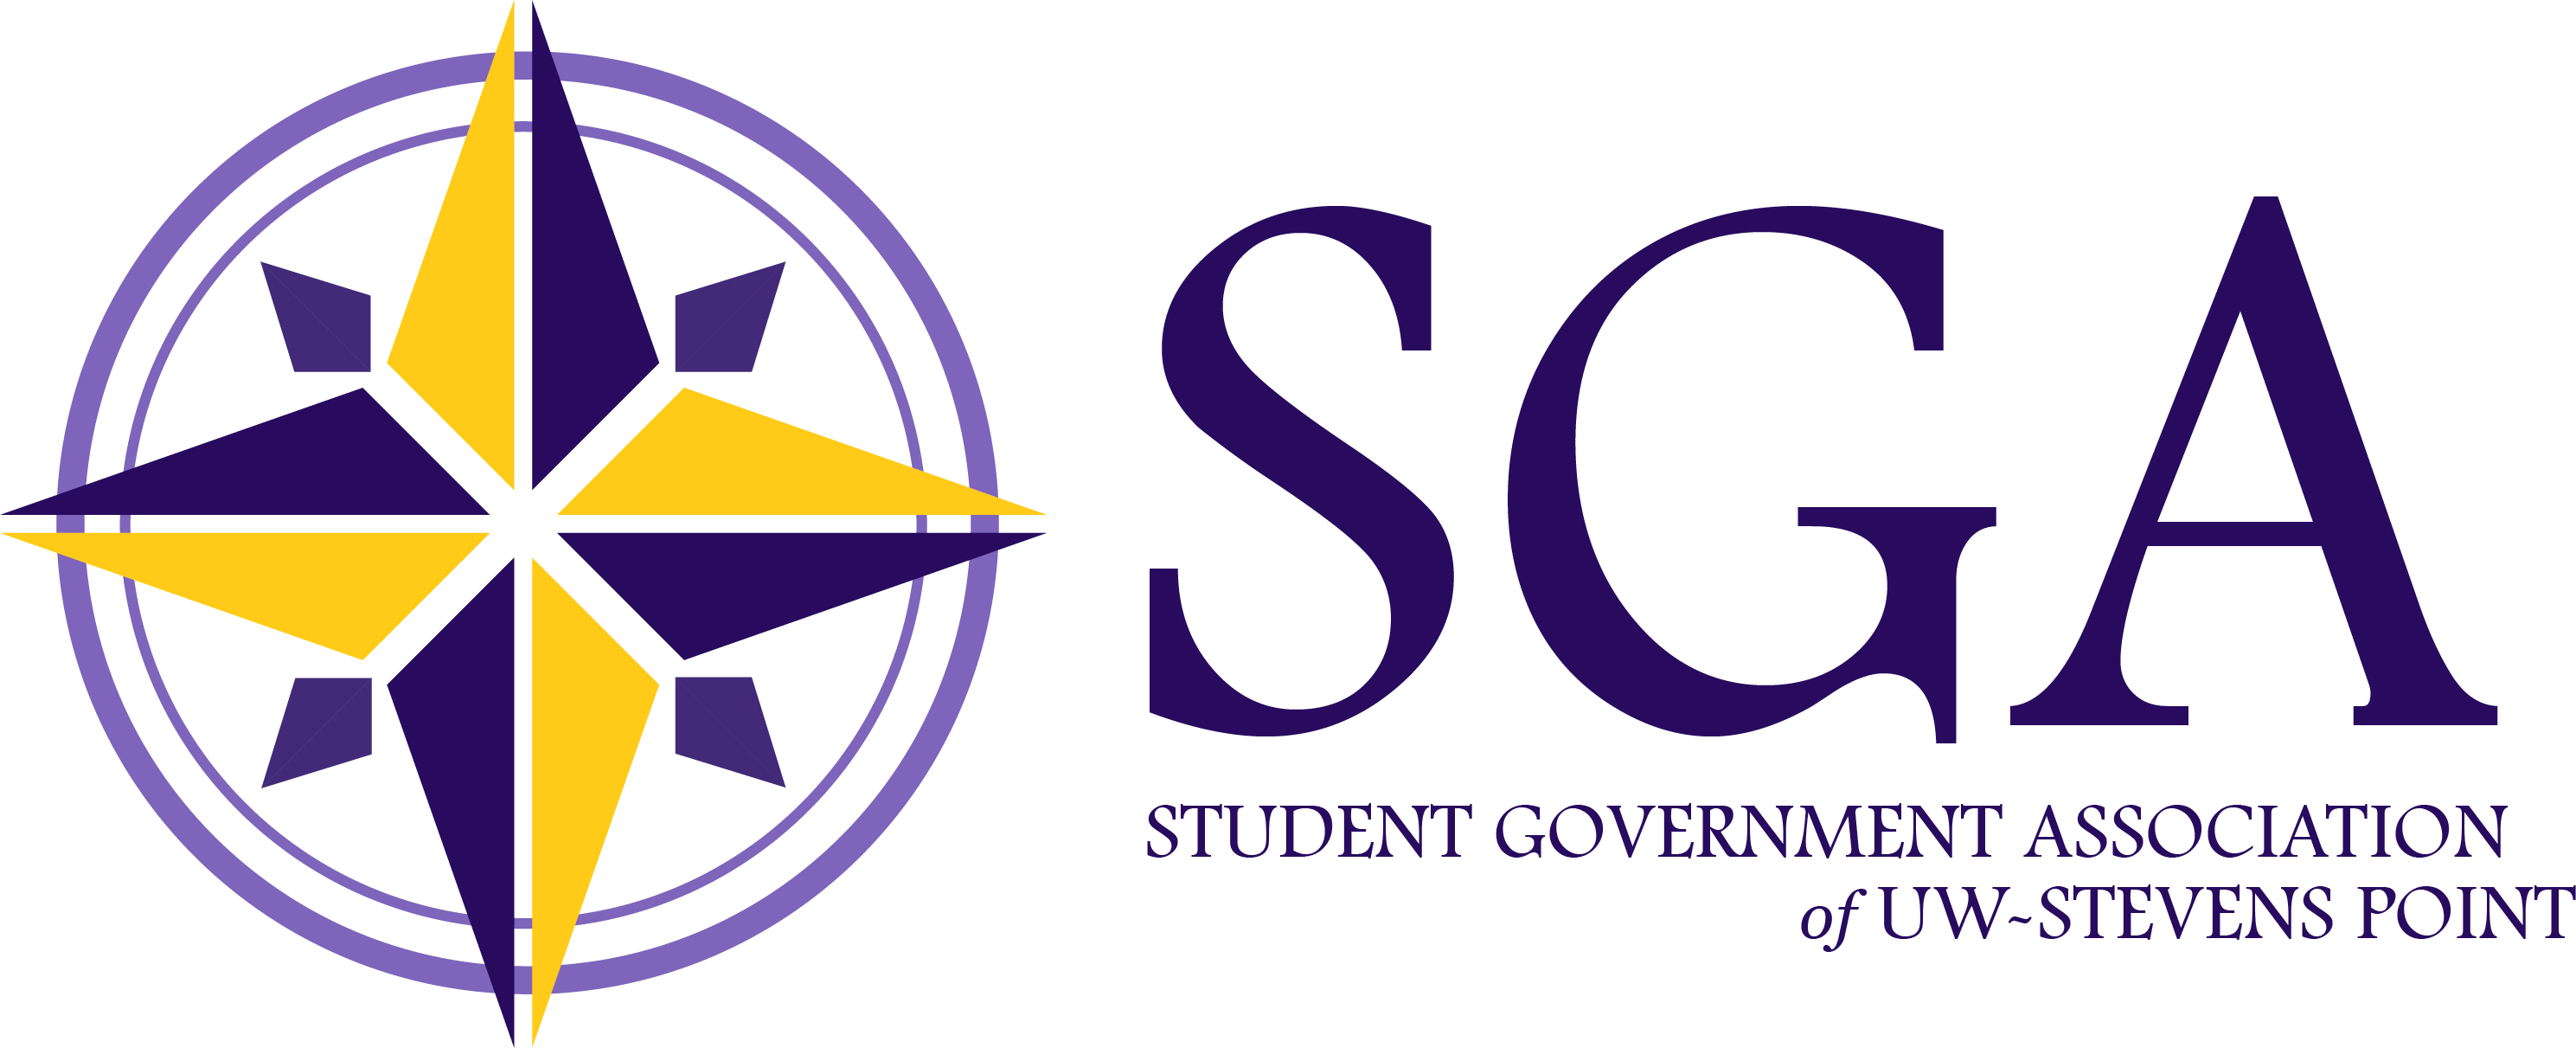 Judicial Branch Of Sga Looking For New Court Justice The Pointer